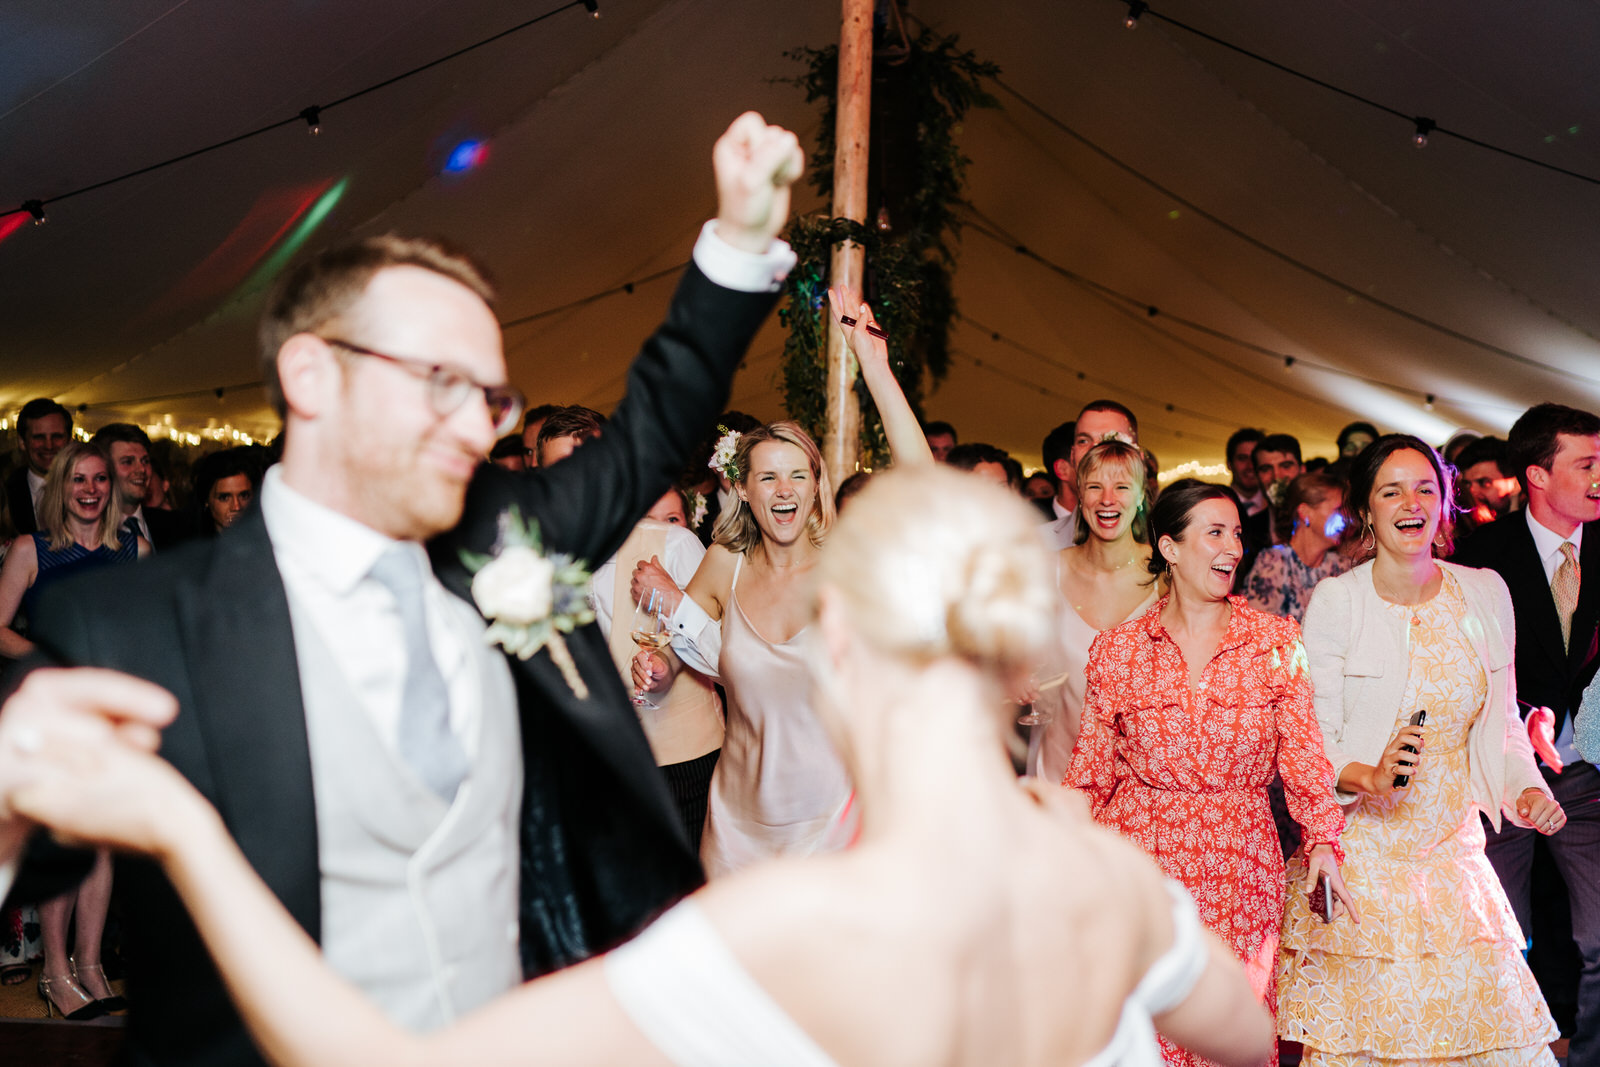 Bride and groom, out of focus in front, finish their first dance and invite guests onto the dancefloor